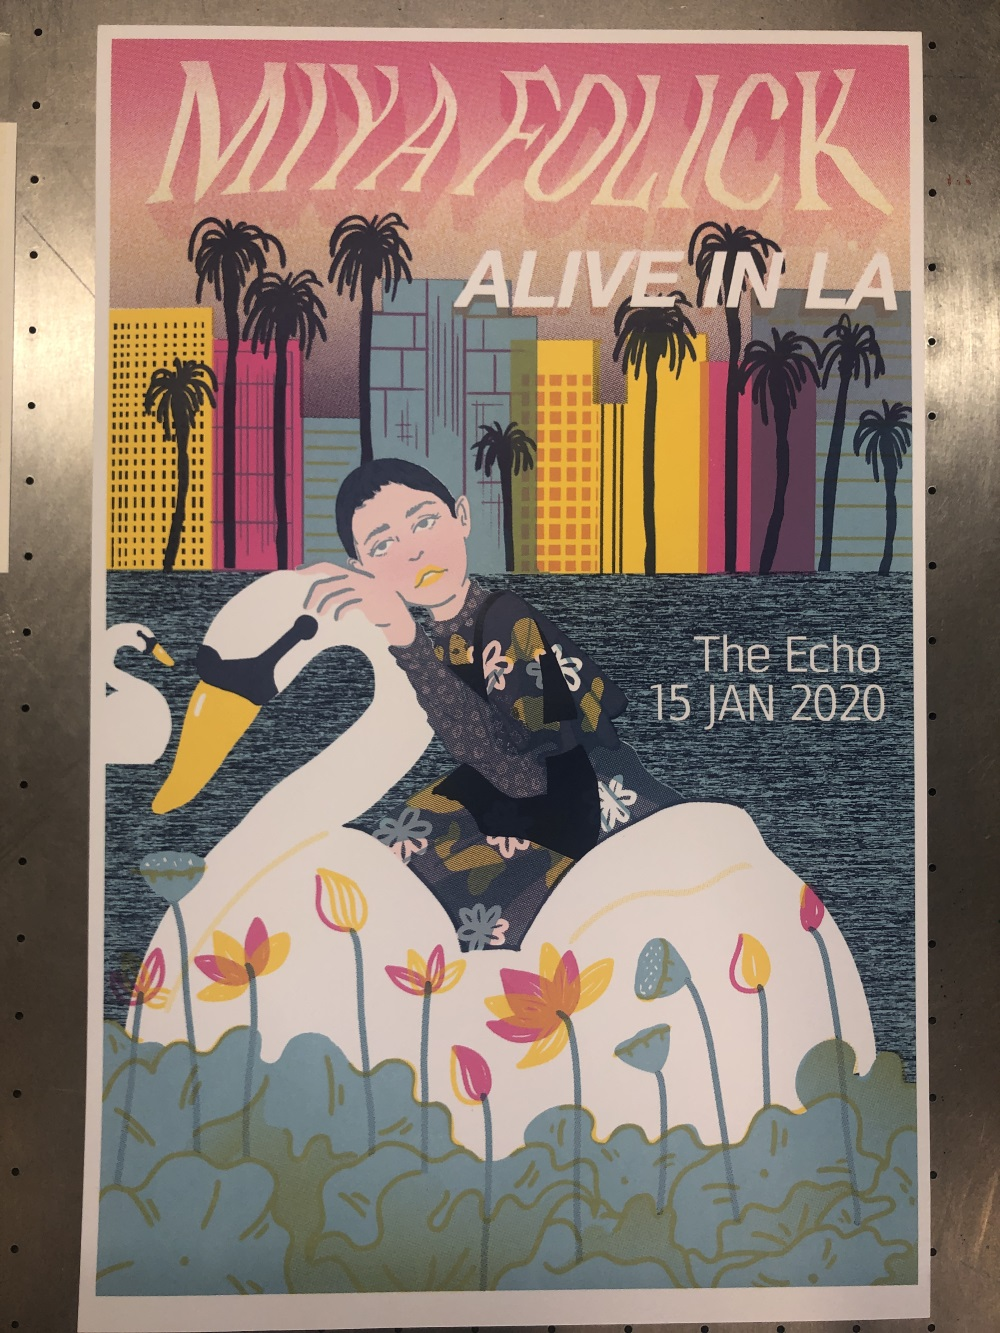 Miya Folick: Alive in LA Poster January 2020